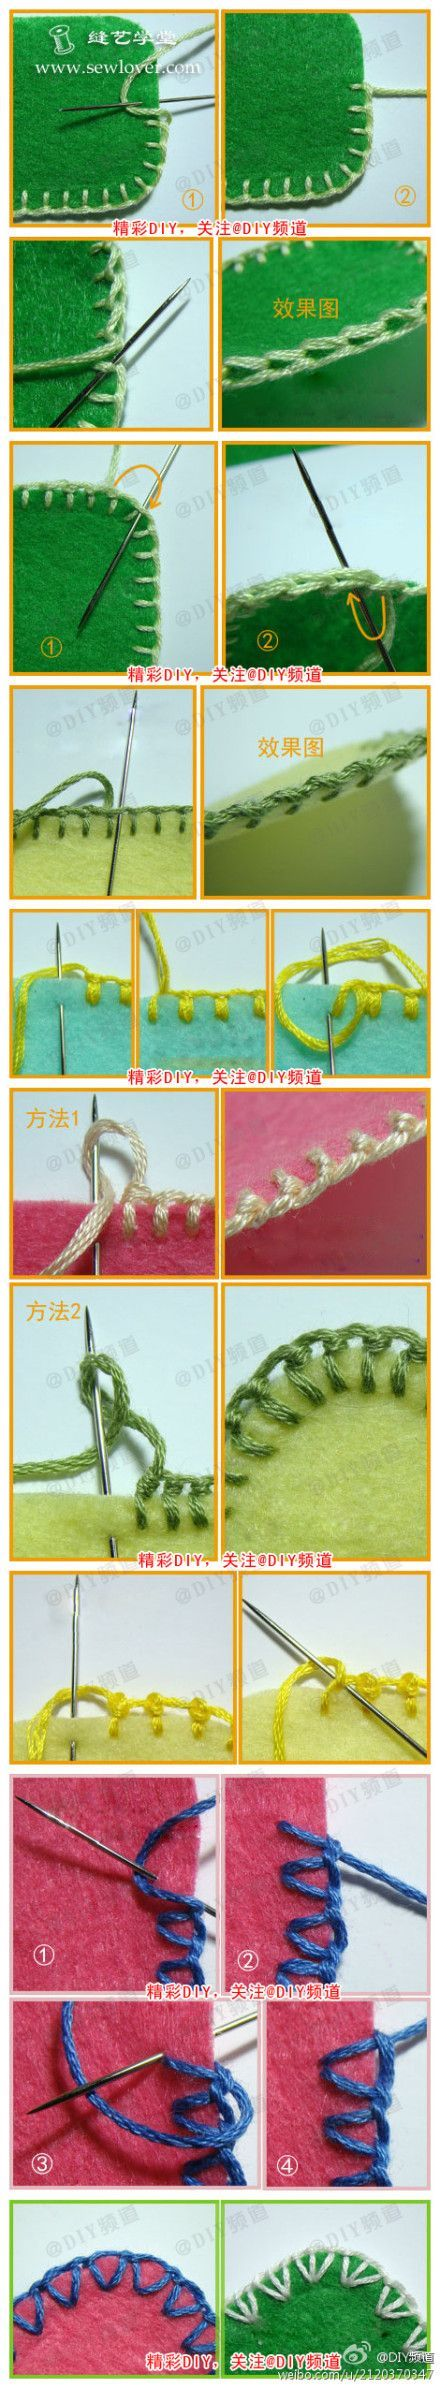 Different types of blanket stitches - photo instructions